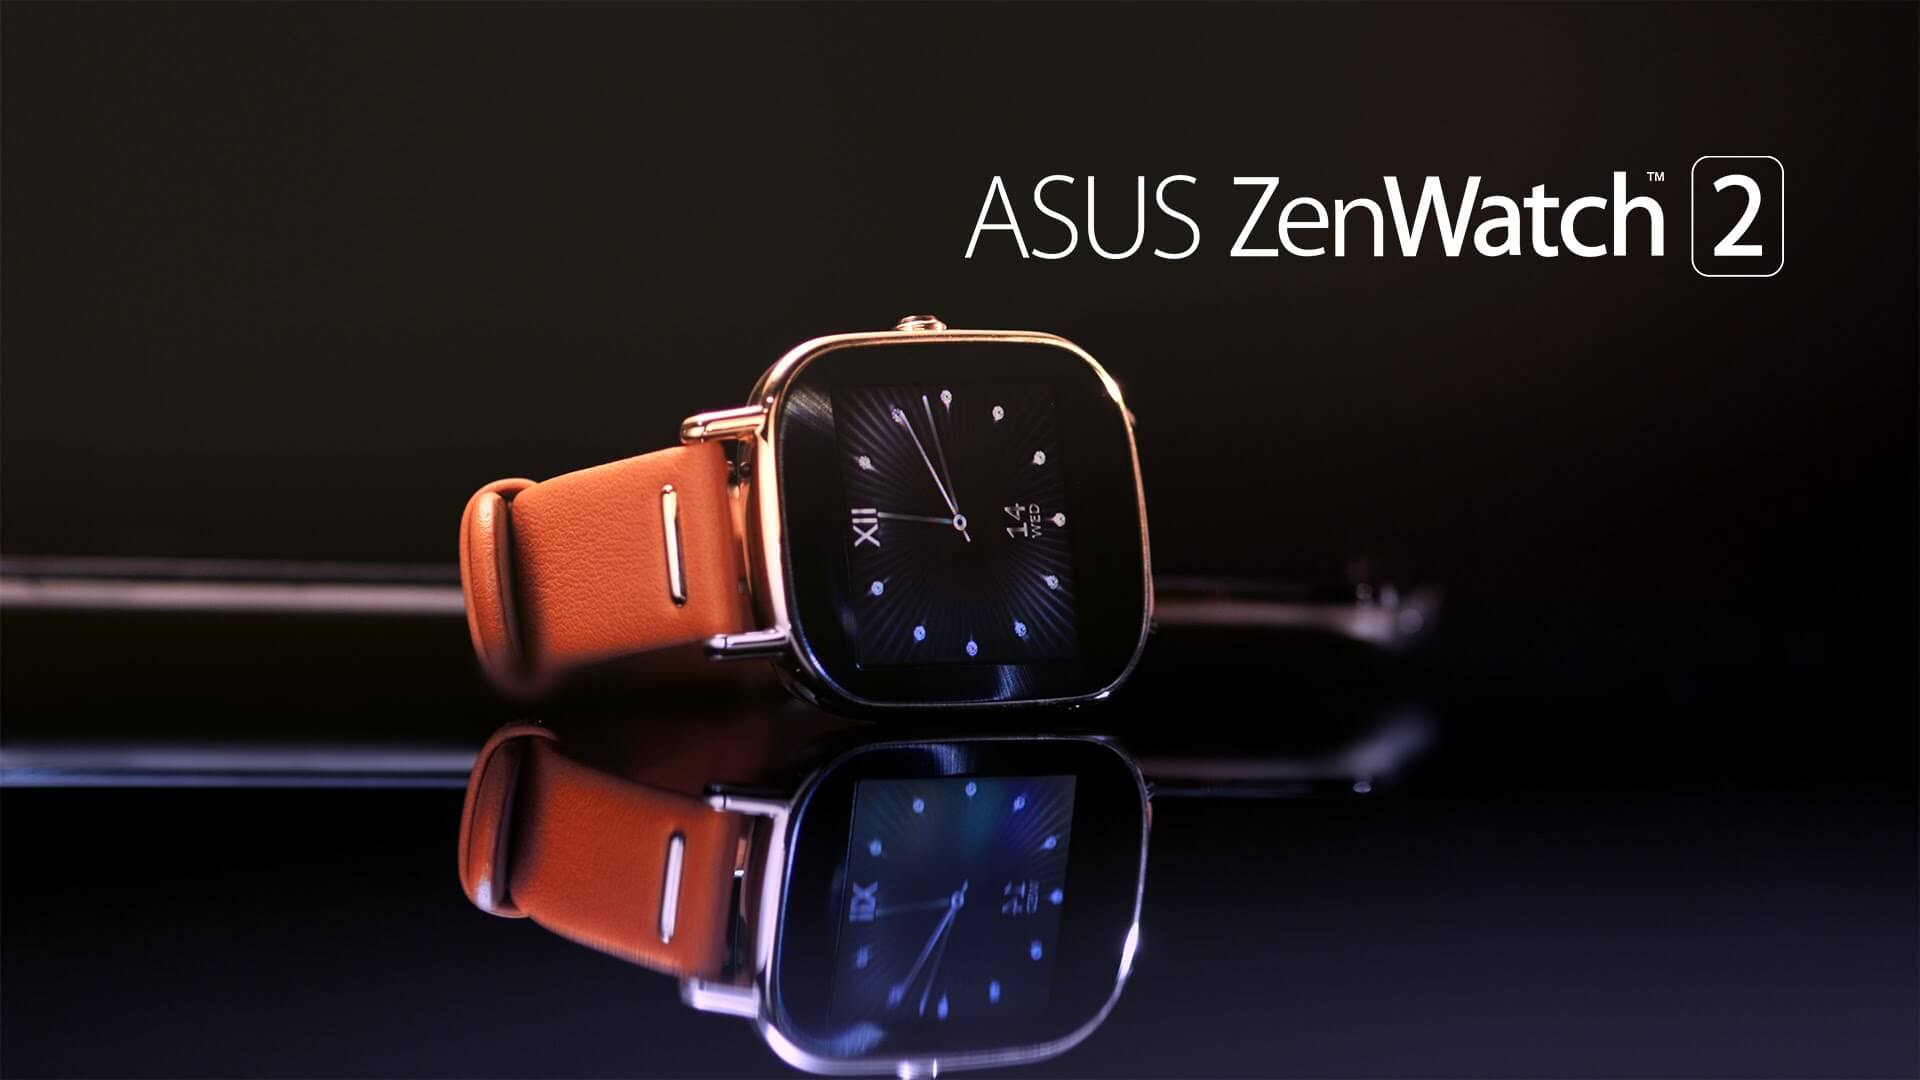 Asus Zenwatch 2 vs Moto 360 [2nd Gen]